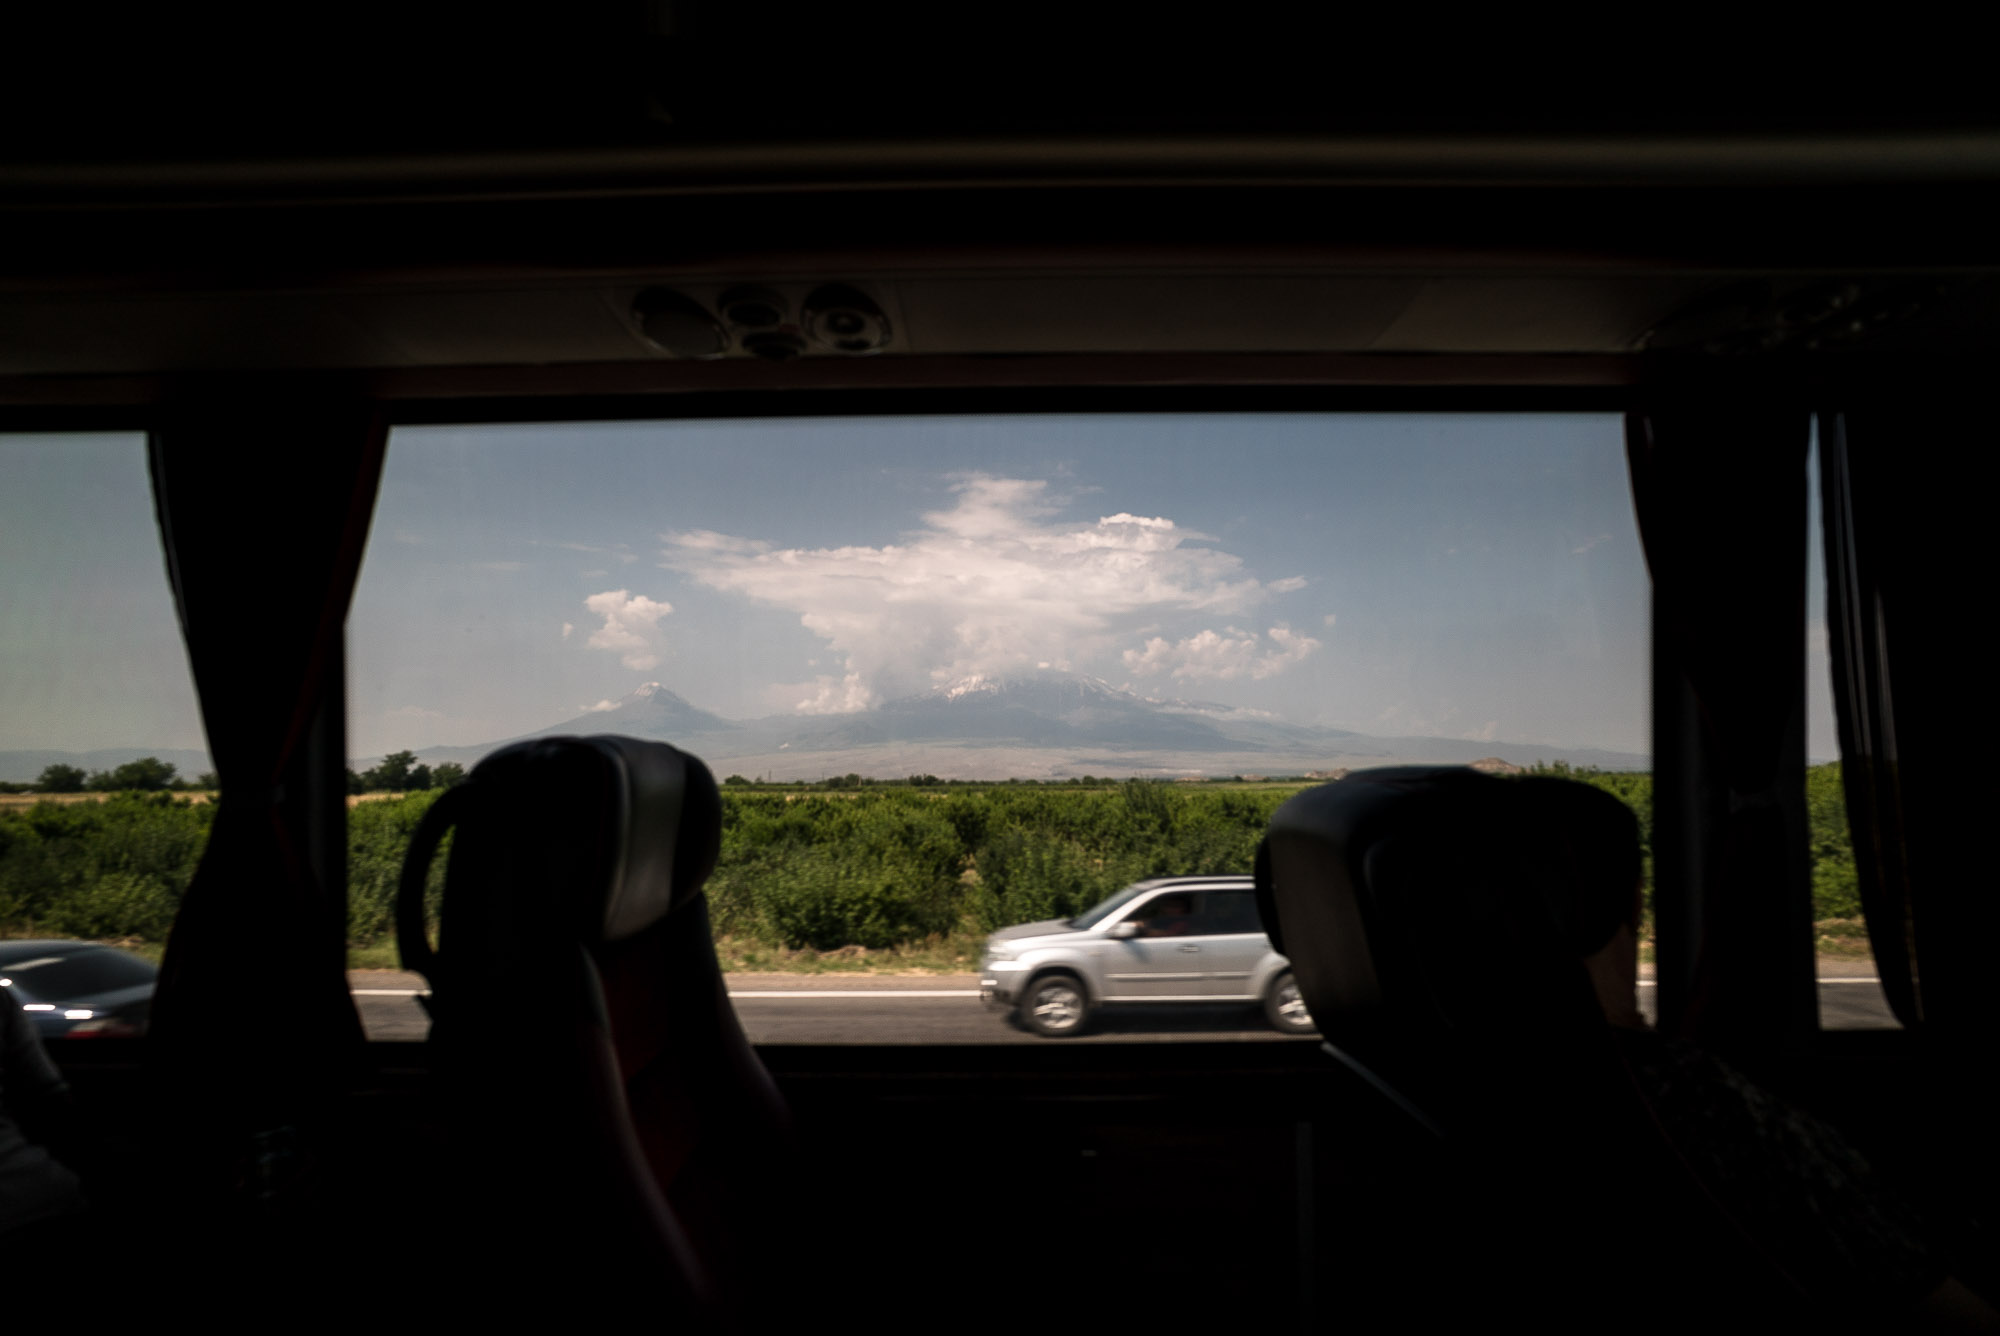 Mount Ararat from the bus window